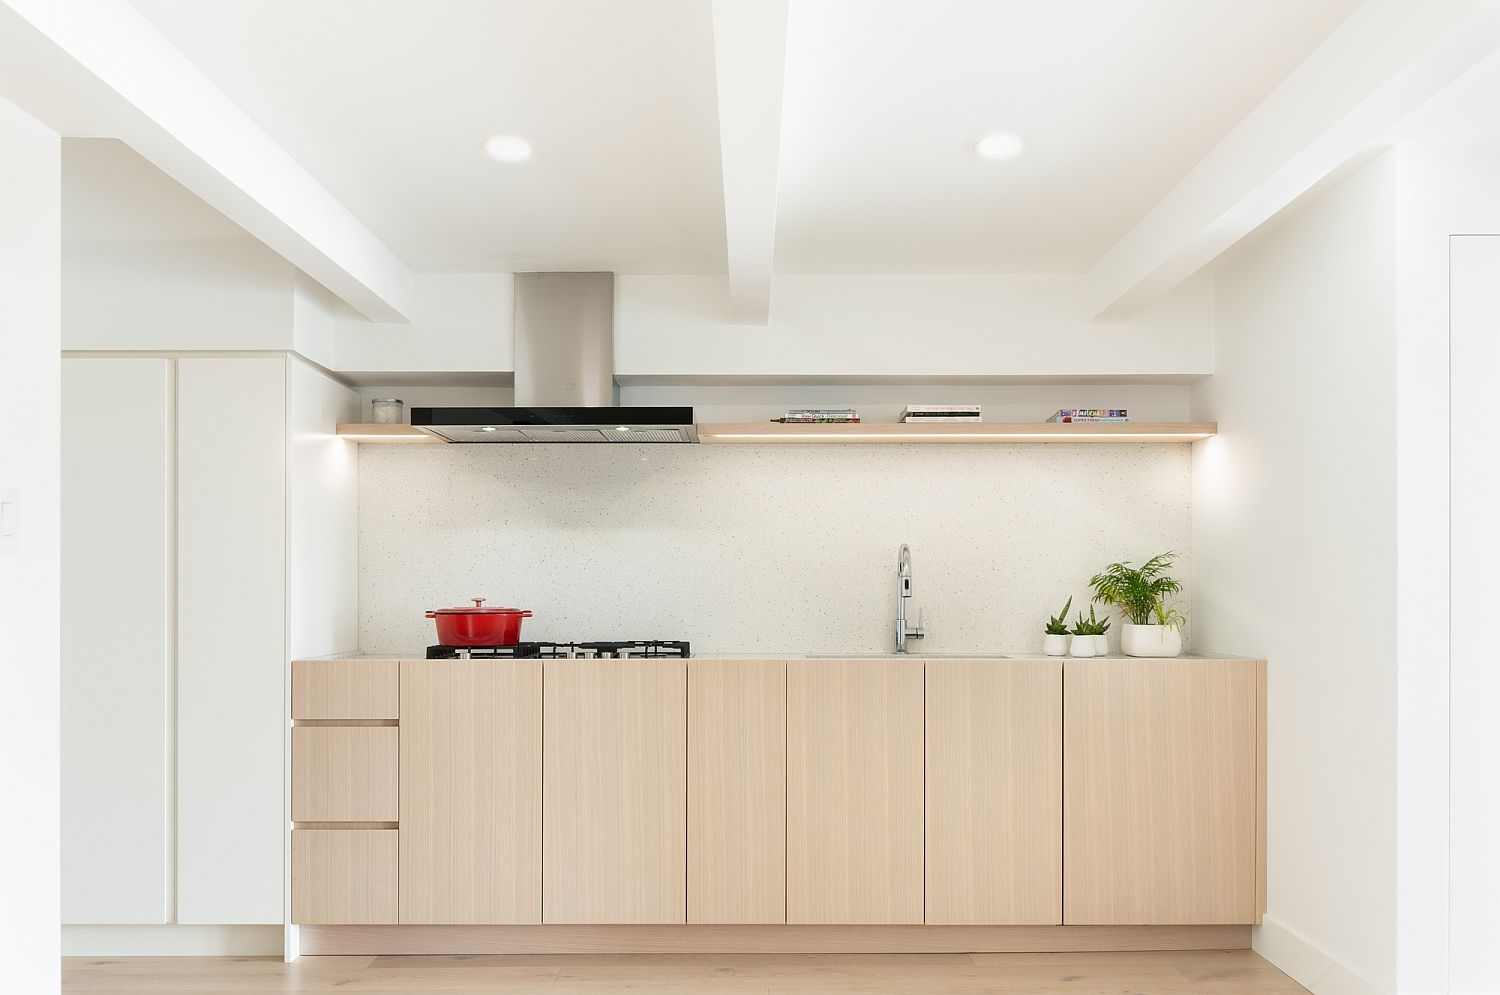 Minimal kitchen in wood and white is a hot trend in the design world